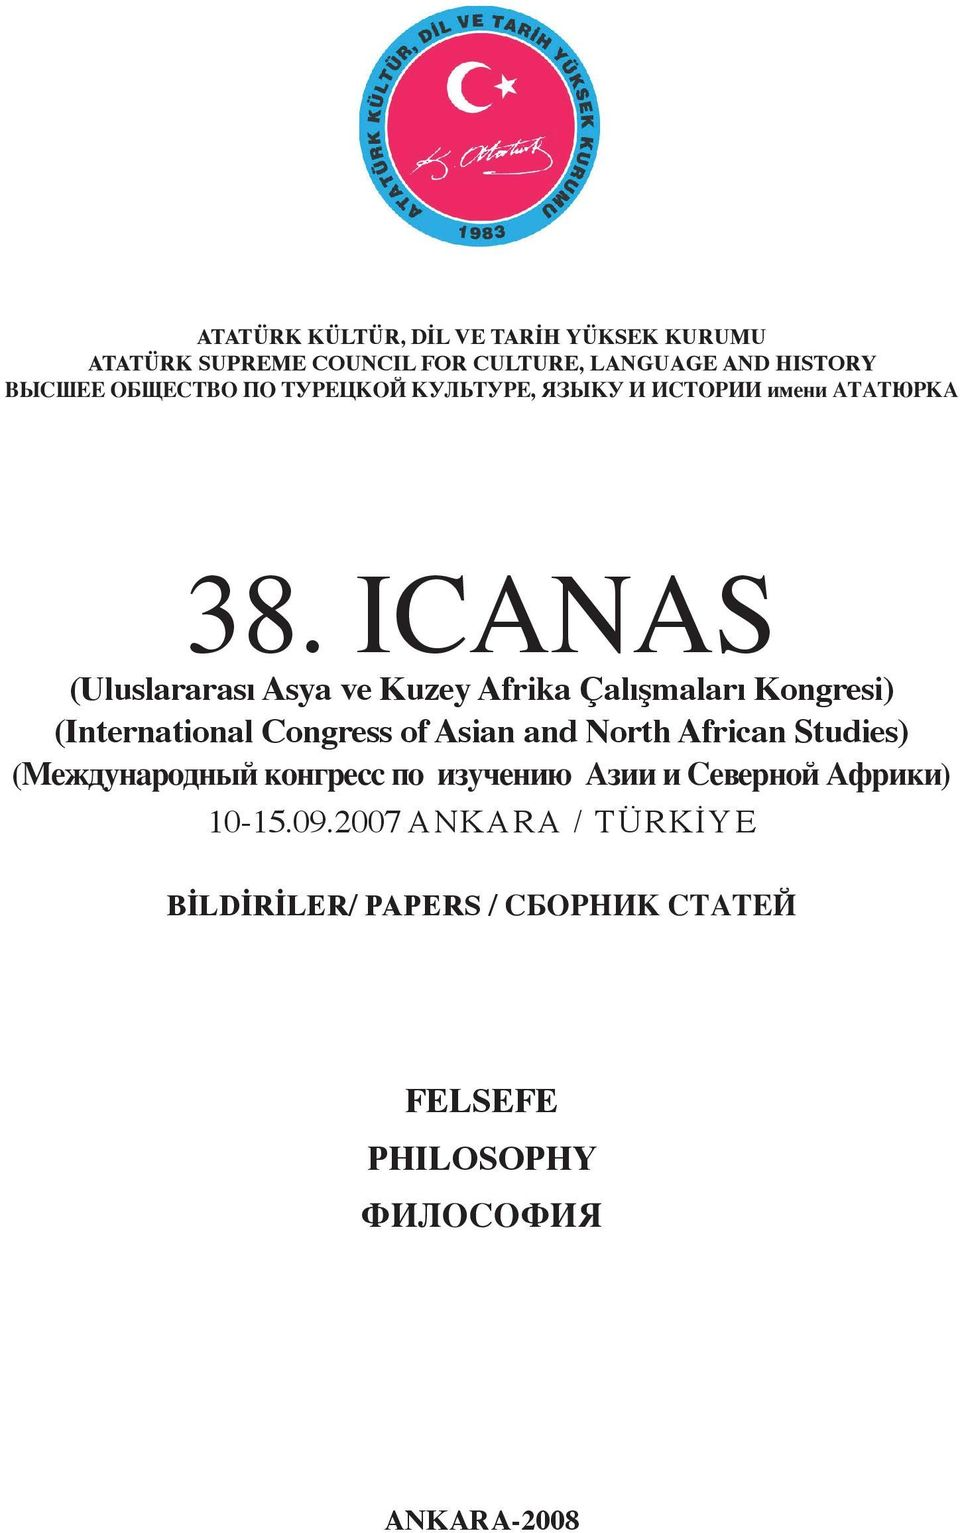 ICANAS (Uluslararası Asya ve Kuzey Afrika Çalışmaları Kongresi) (International Congress of Asian and North African